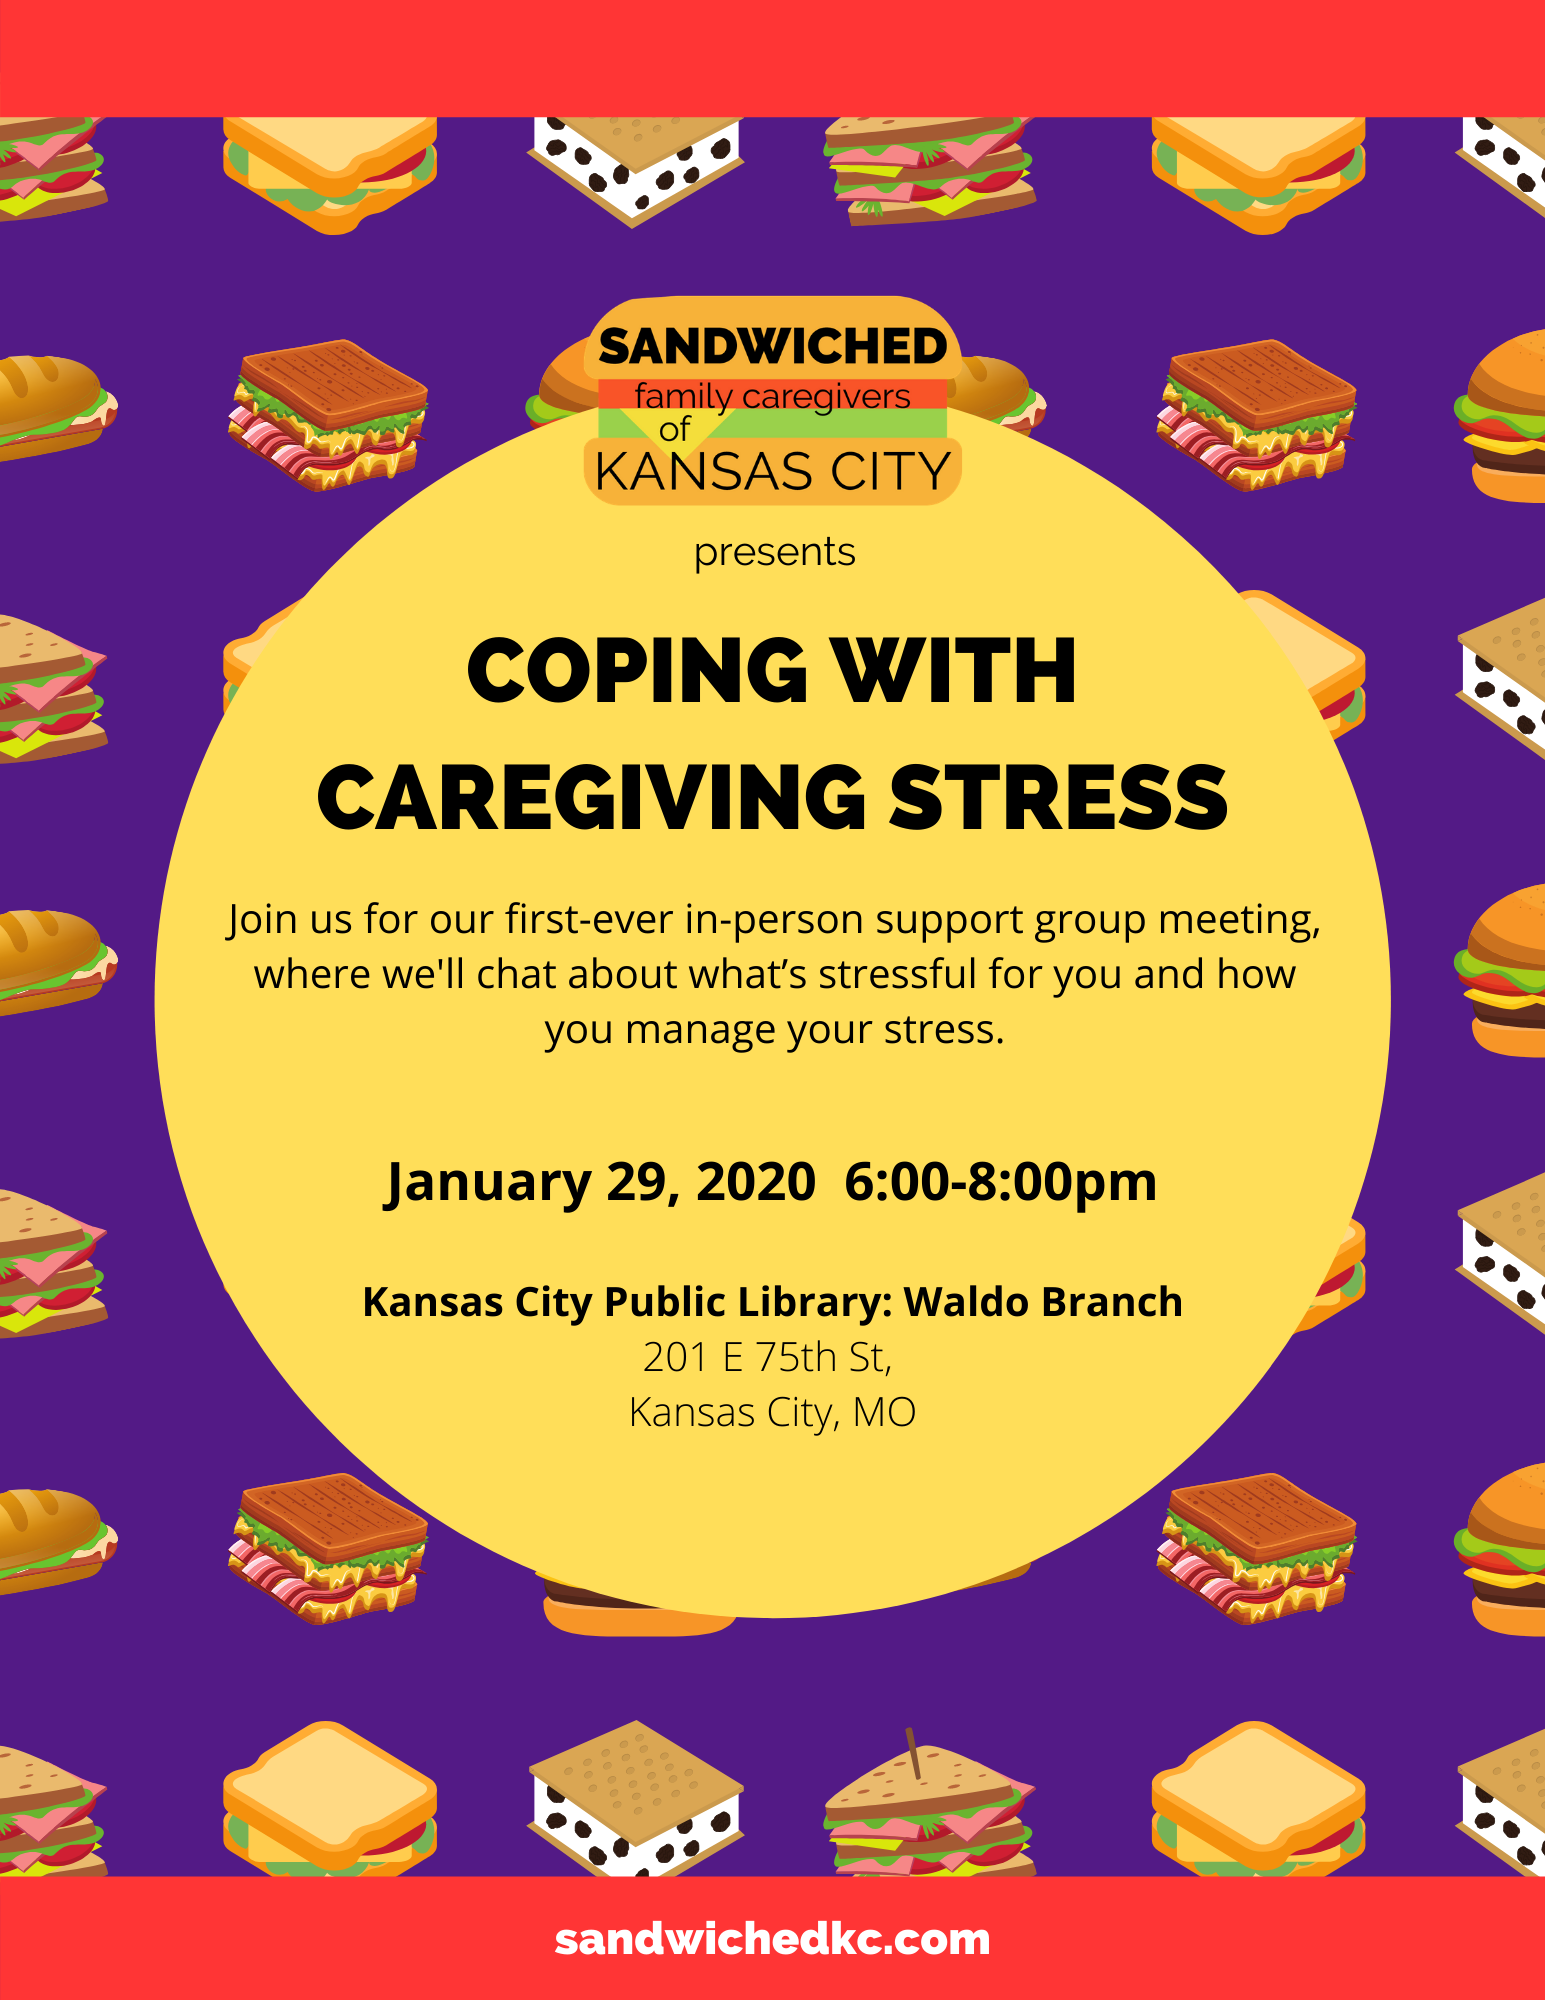 Coping with Caregiving Stress Support Group